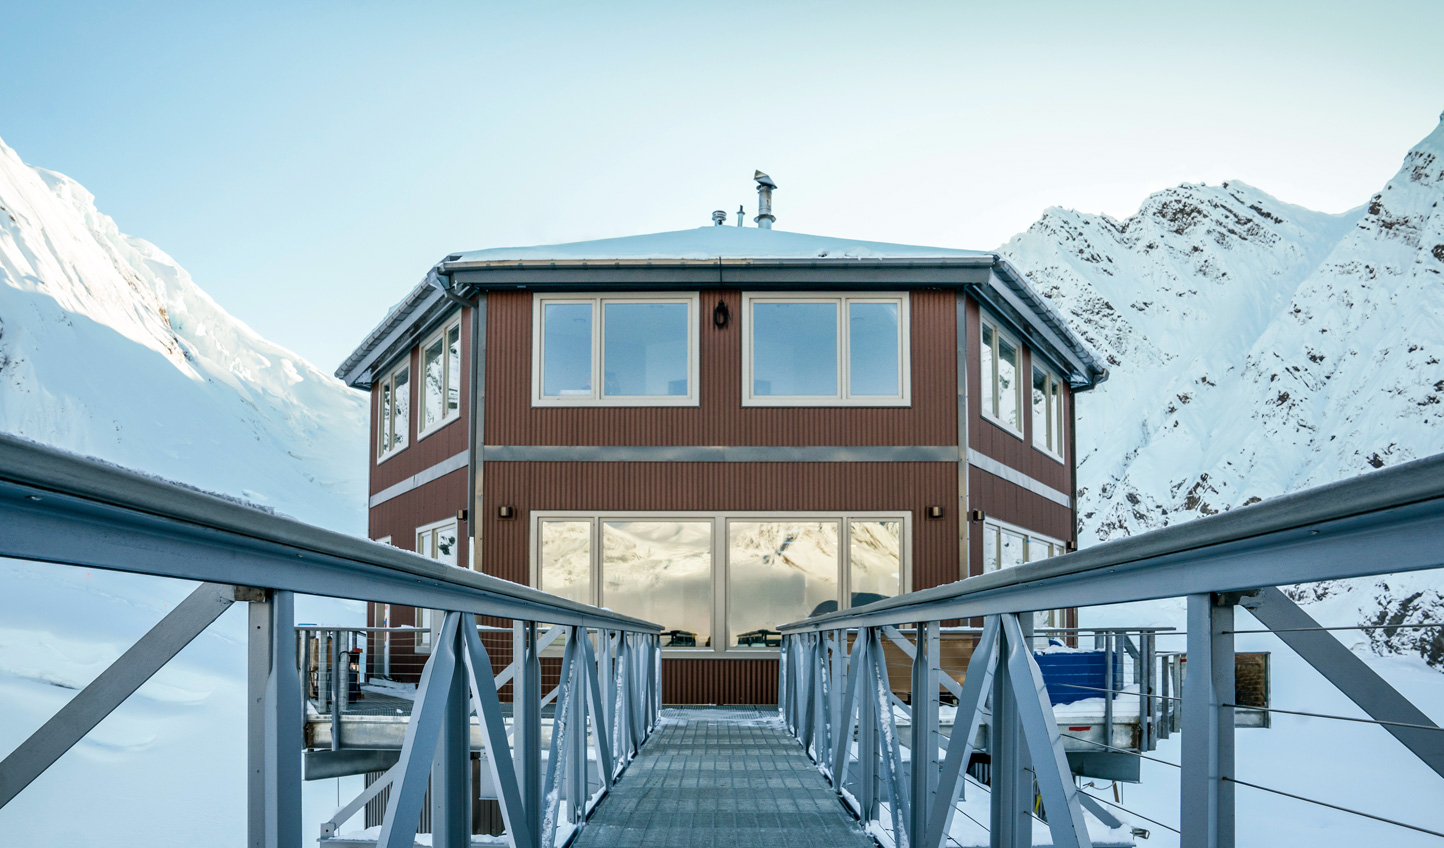 Escape the world up at Sheldon Chalet